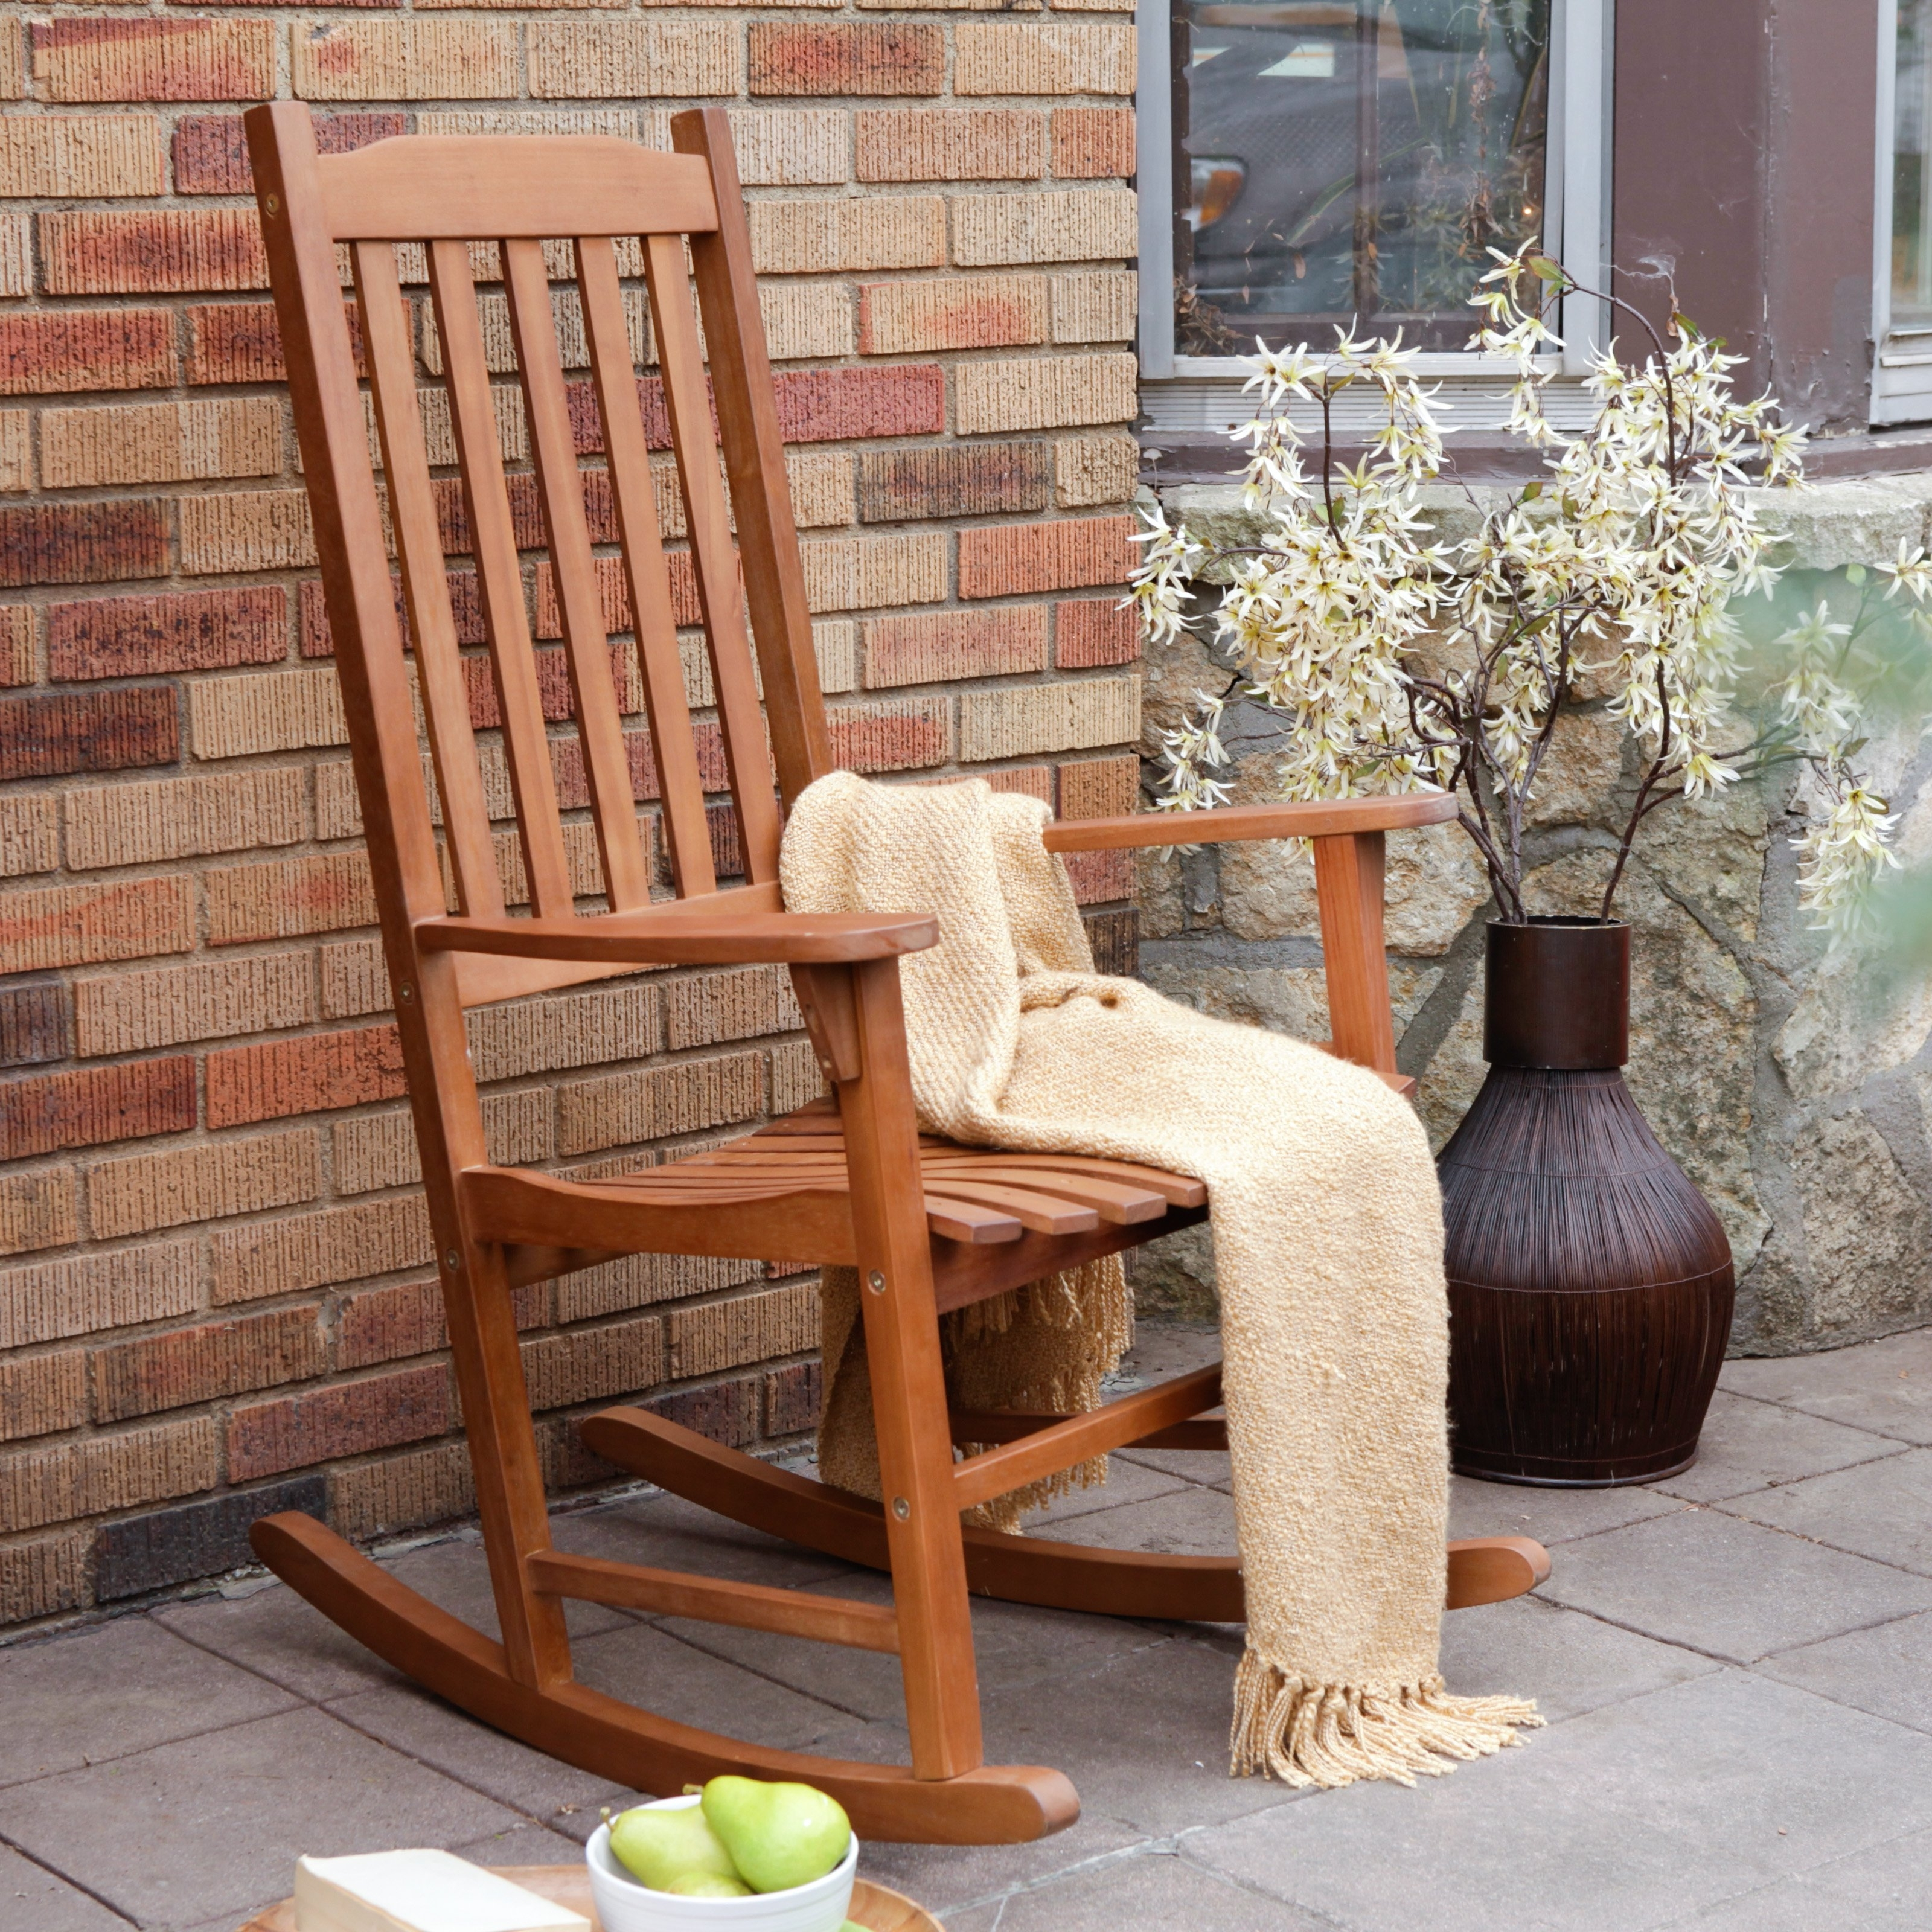 2019 Wooden Patio Rocking Chairs Intended For Coral Coast Indoor/outdoor Mission Slat Rocking Chair – Natural (View 2 of 20)